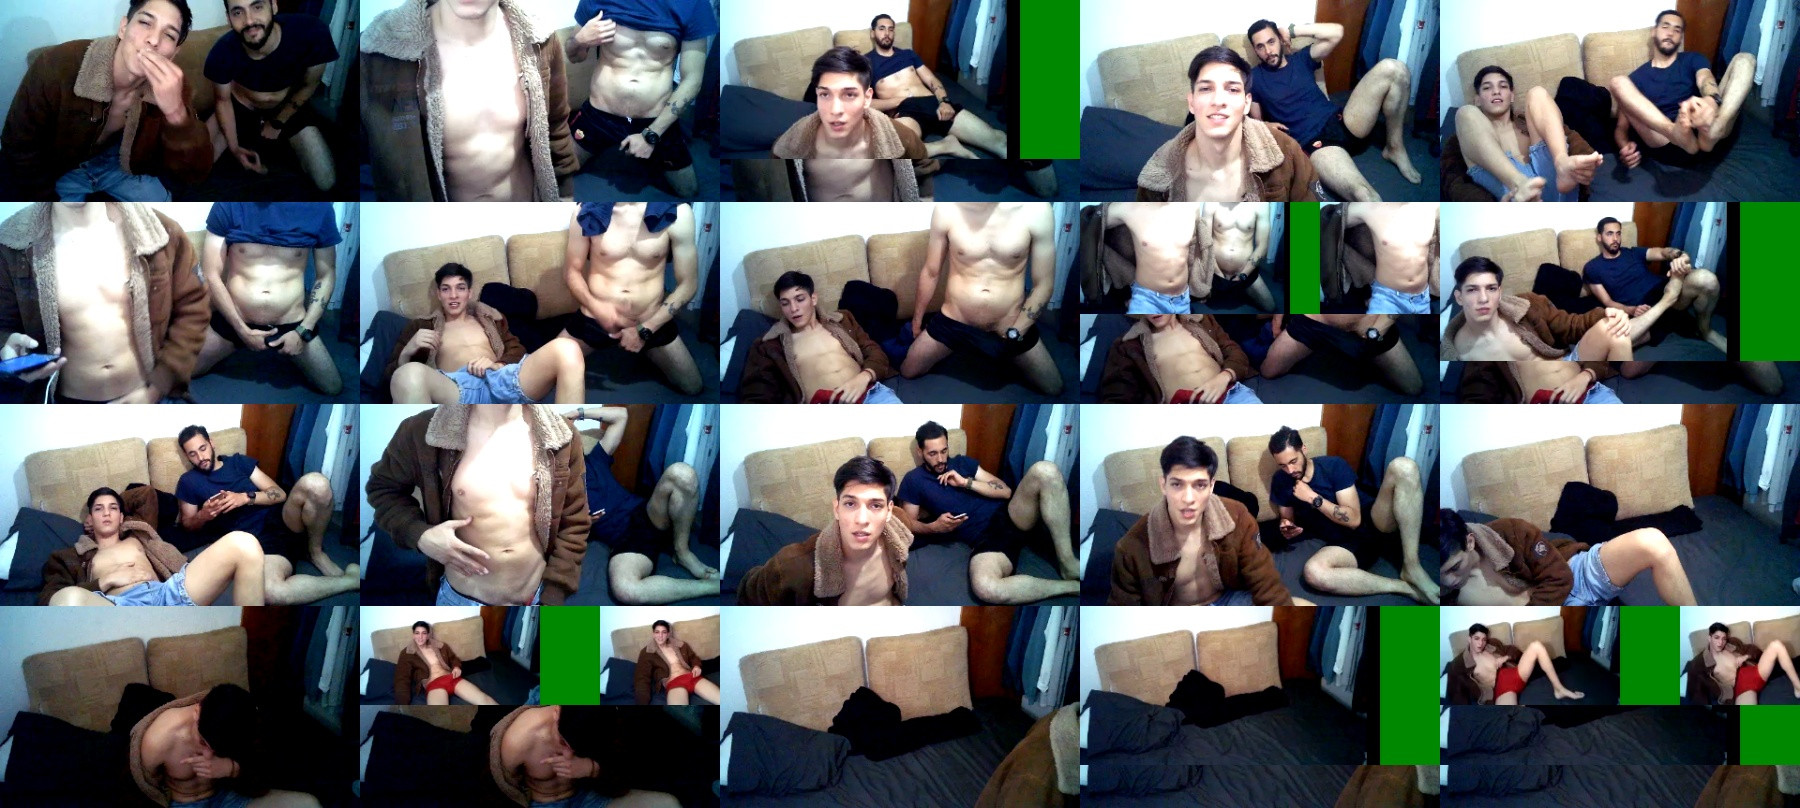 latent20 Cam4 03-03-2021 Recorded Video Show